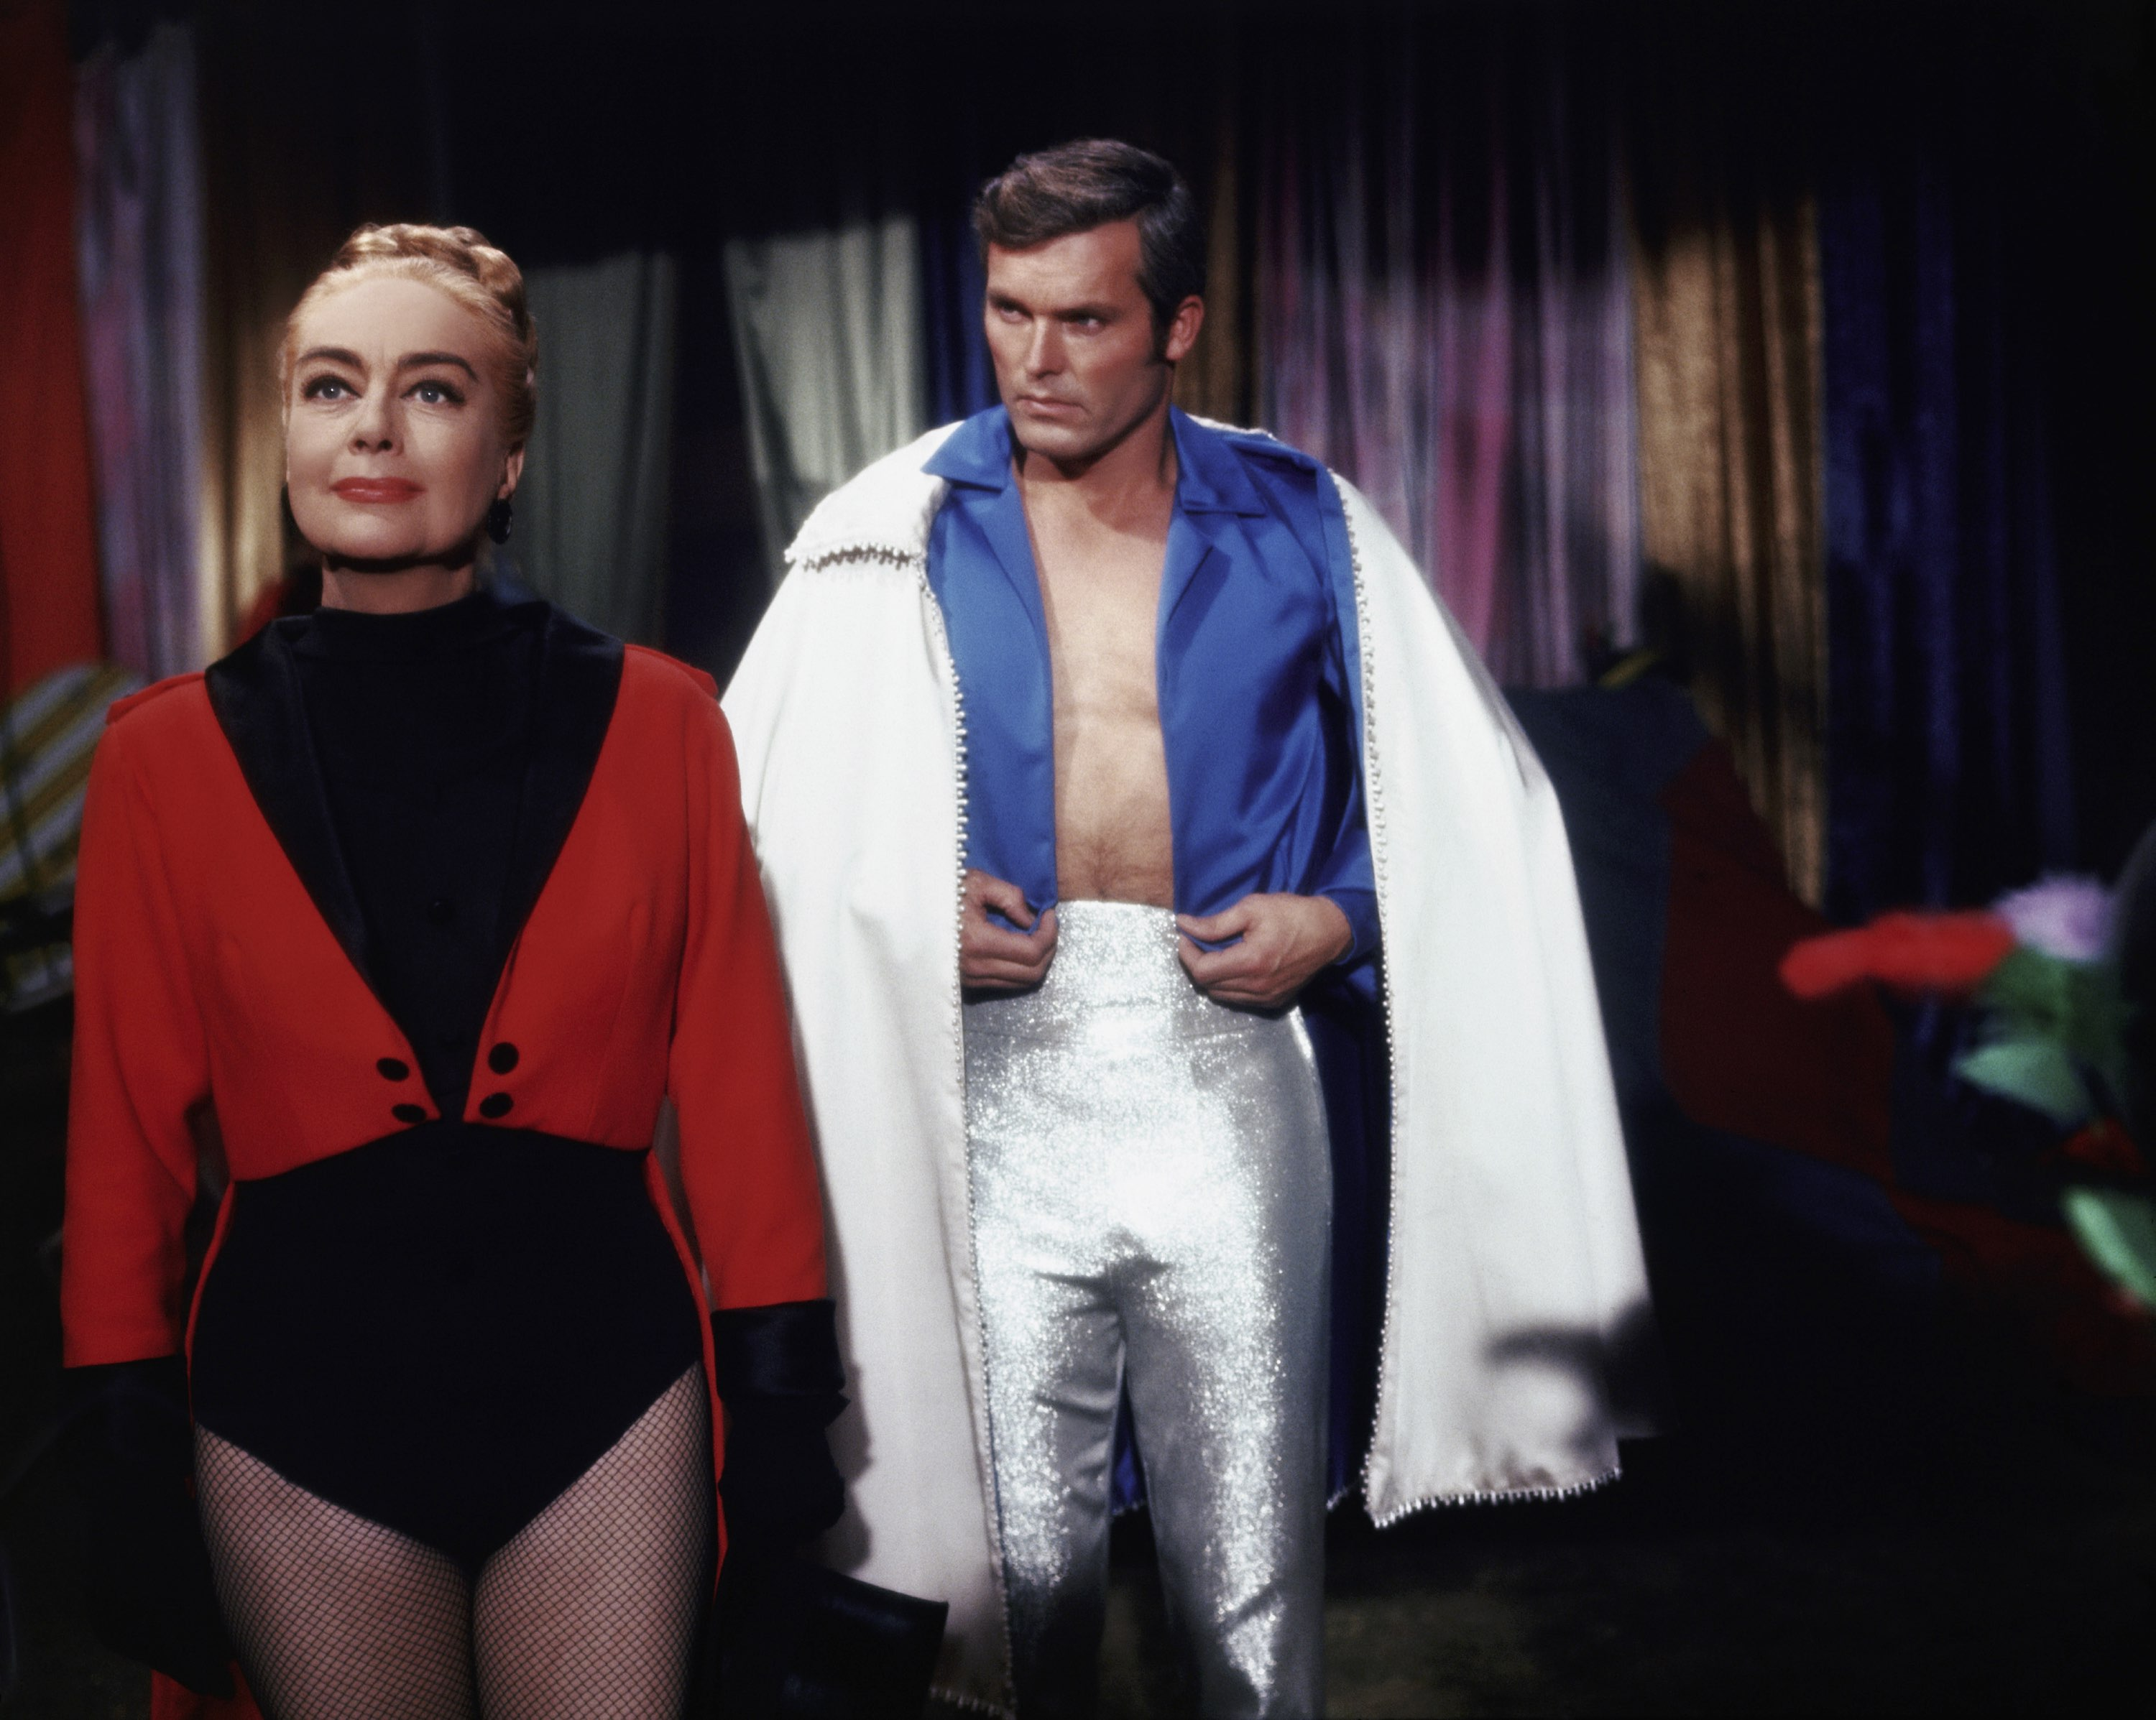 Circus owner Joan Crawford and her trapeze artist lover Ty Hardin in Berserk (1967)